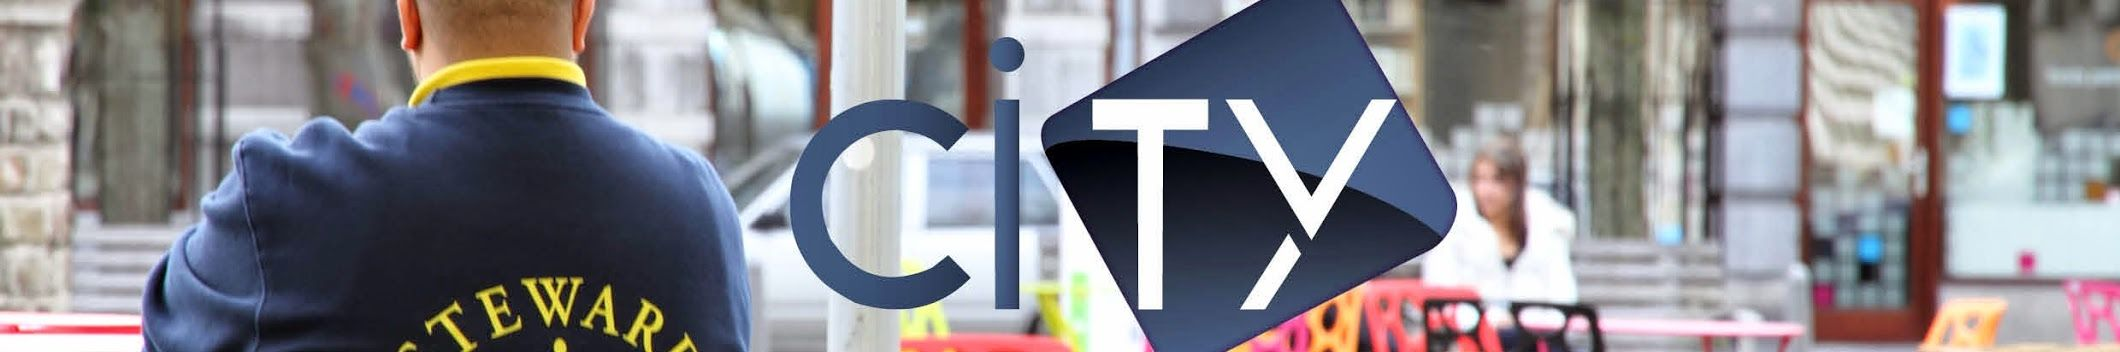 CITY TV chaîne youtube AMCV